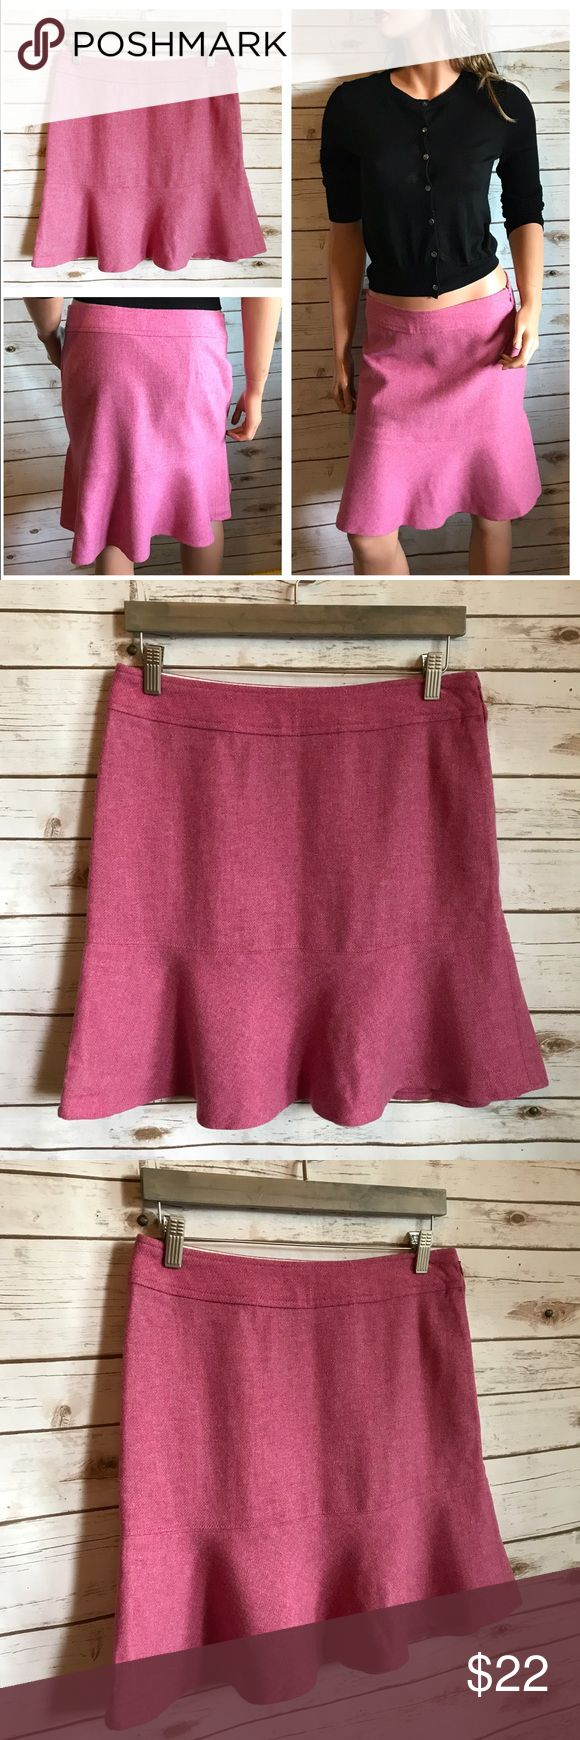 "GAP Skirt Pink Wool Trumpet EUC GAP Skirt Pink Wool Trumpet EUC Size 4 Wool Nylon  15.5"" waist 19"" long Size zipper  I love to bundle up to $100 or 20lbs. whichever comes first. *** PLEASE DON'T BUY if you are scent sensitive. I use fragranced detergent, dryer sheets, wrinkle release, etc. ***  •••Thank you for looking and please check out the rest of my closet. ••• GAP Skirts Mini"